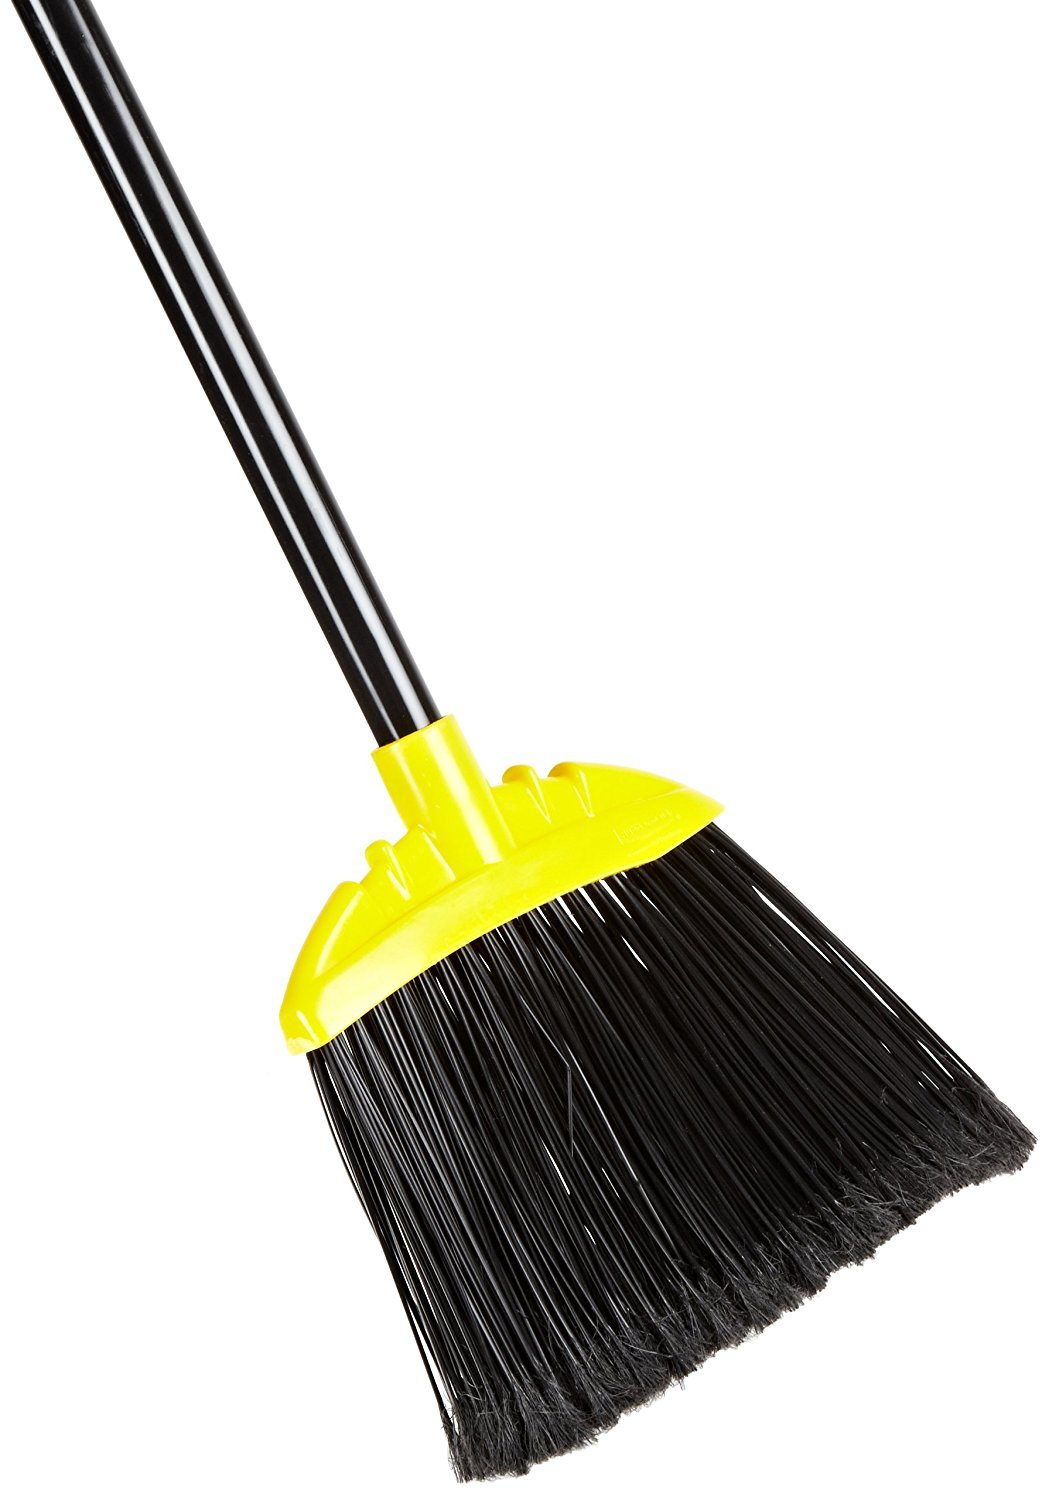 Rubbermaid Commercial FG638906BLA Jumbo Smooth Sweep Polypropylene Angle Broom with Metal Handle, Black (1 PACK)